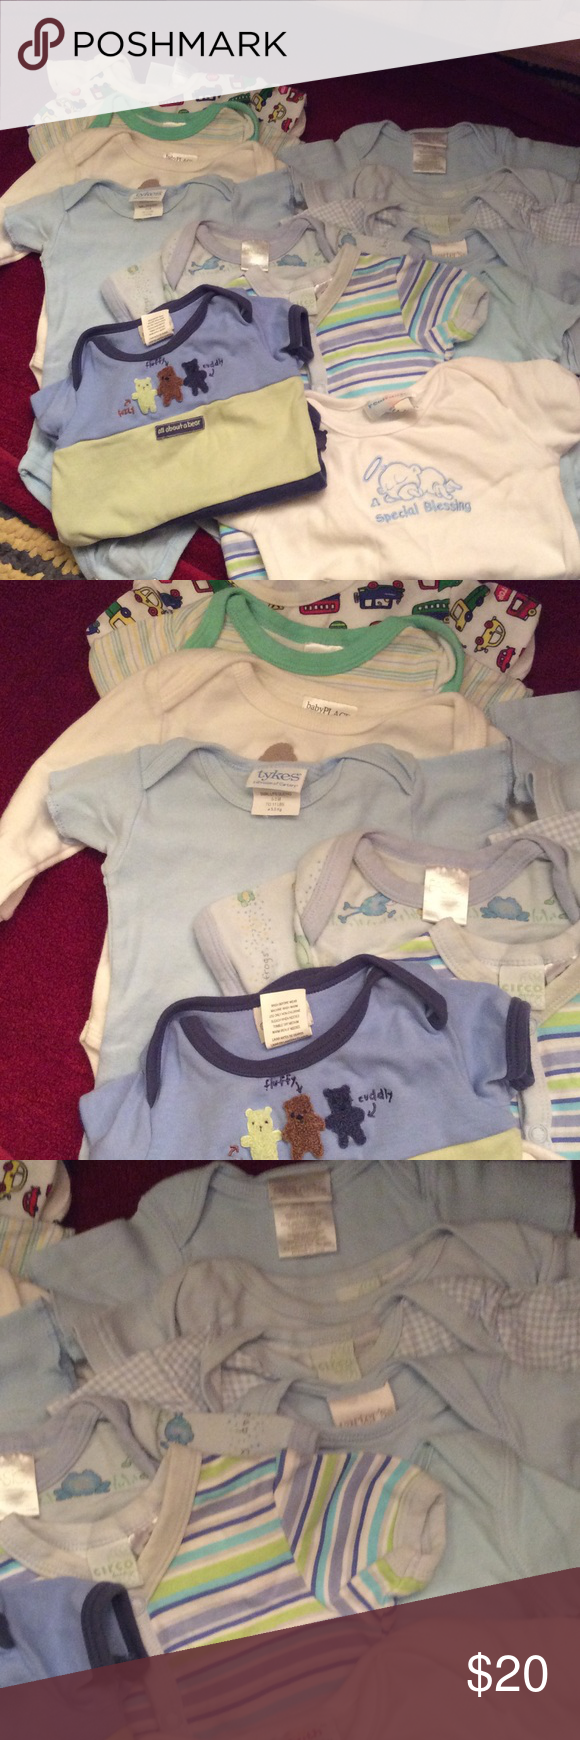 Boy Baby Clothes Few Stains Priced To Sell Now Baby Clothes Assorted